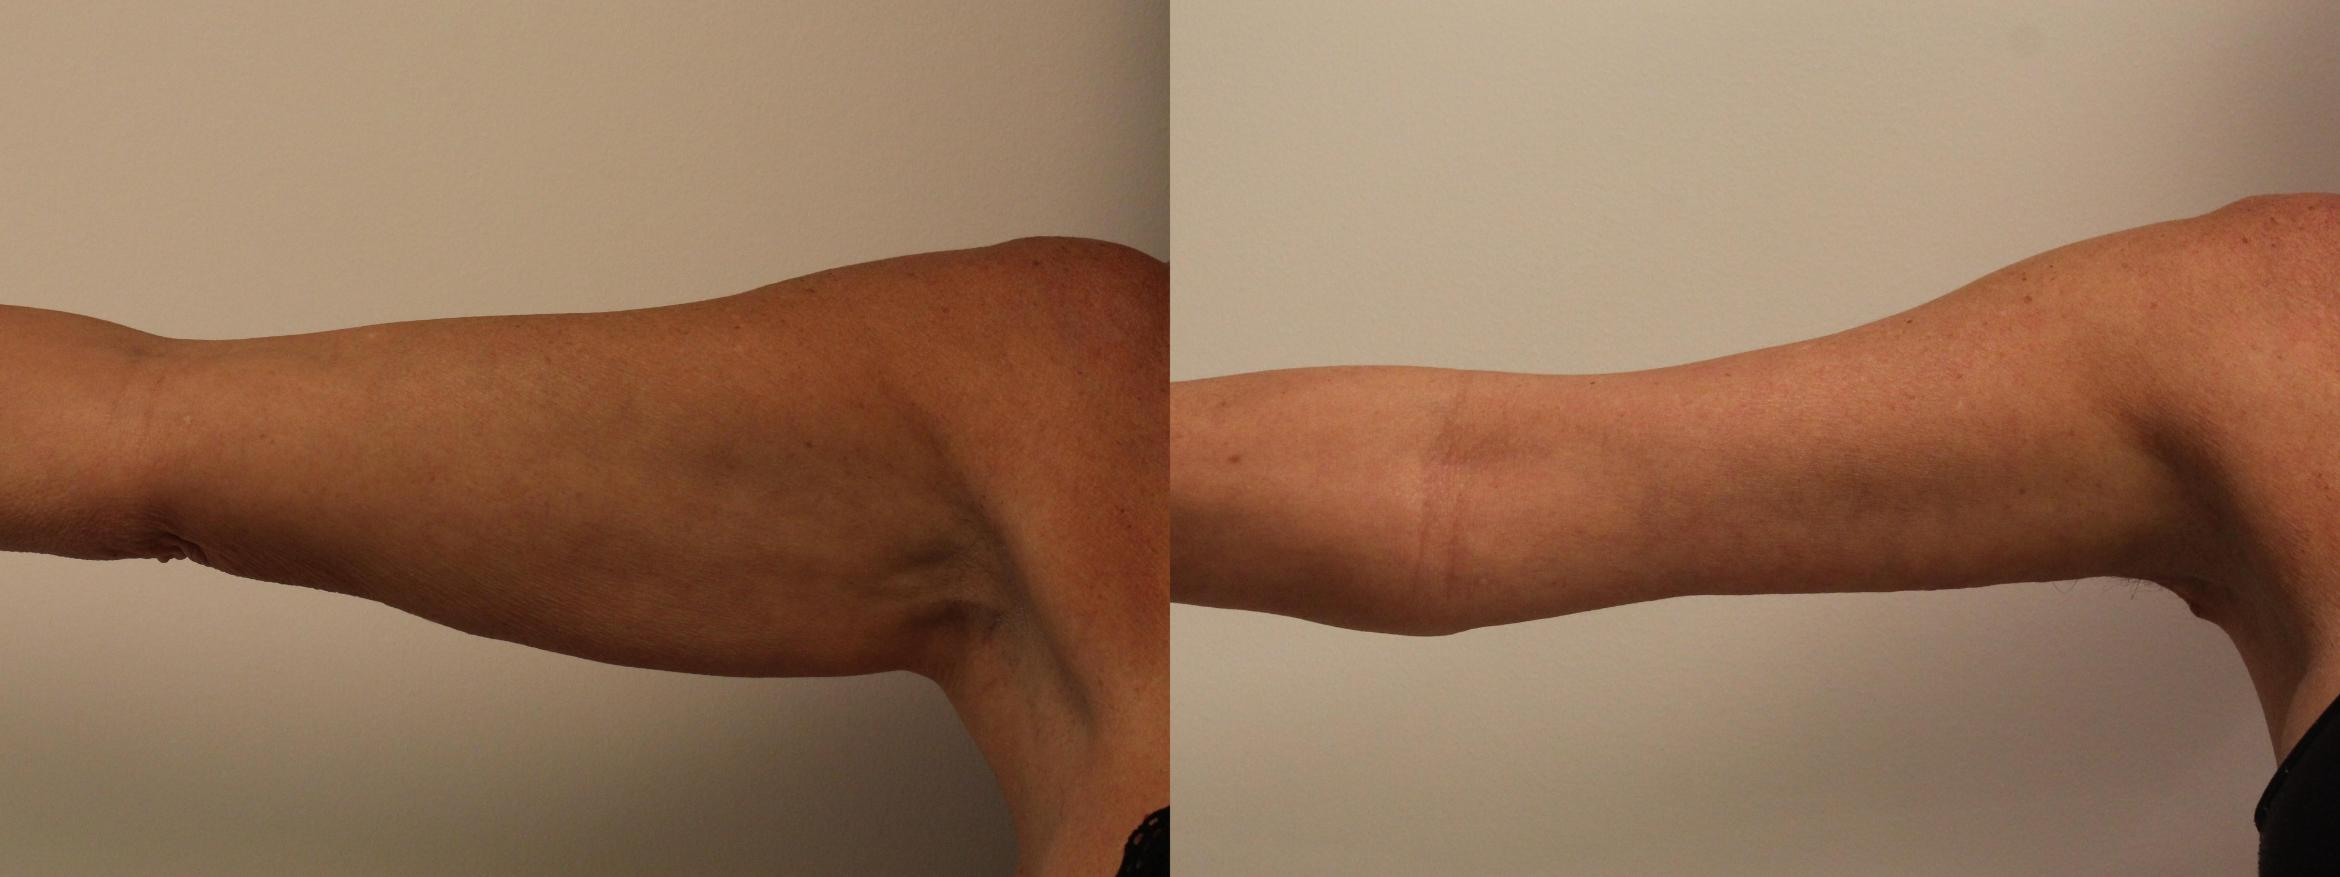 Arm Lift (Brachioplasty) Case 135 Before & After Front | Barrington, Illinois | Renee Burke, MD